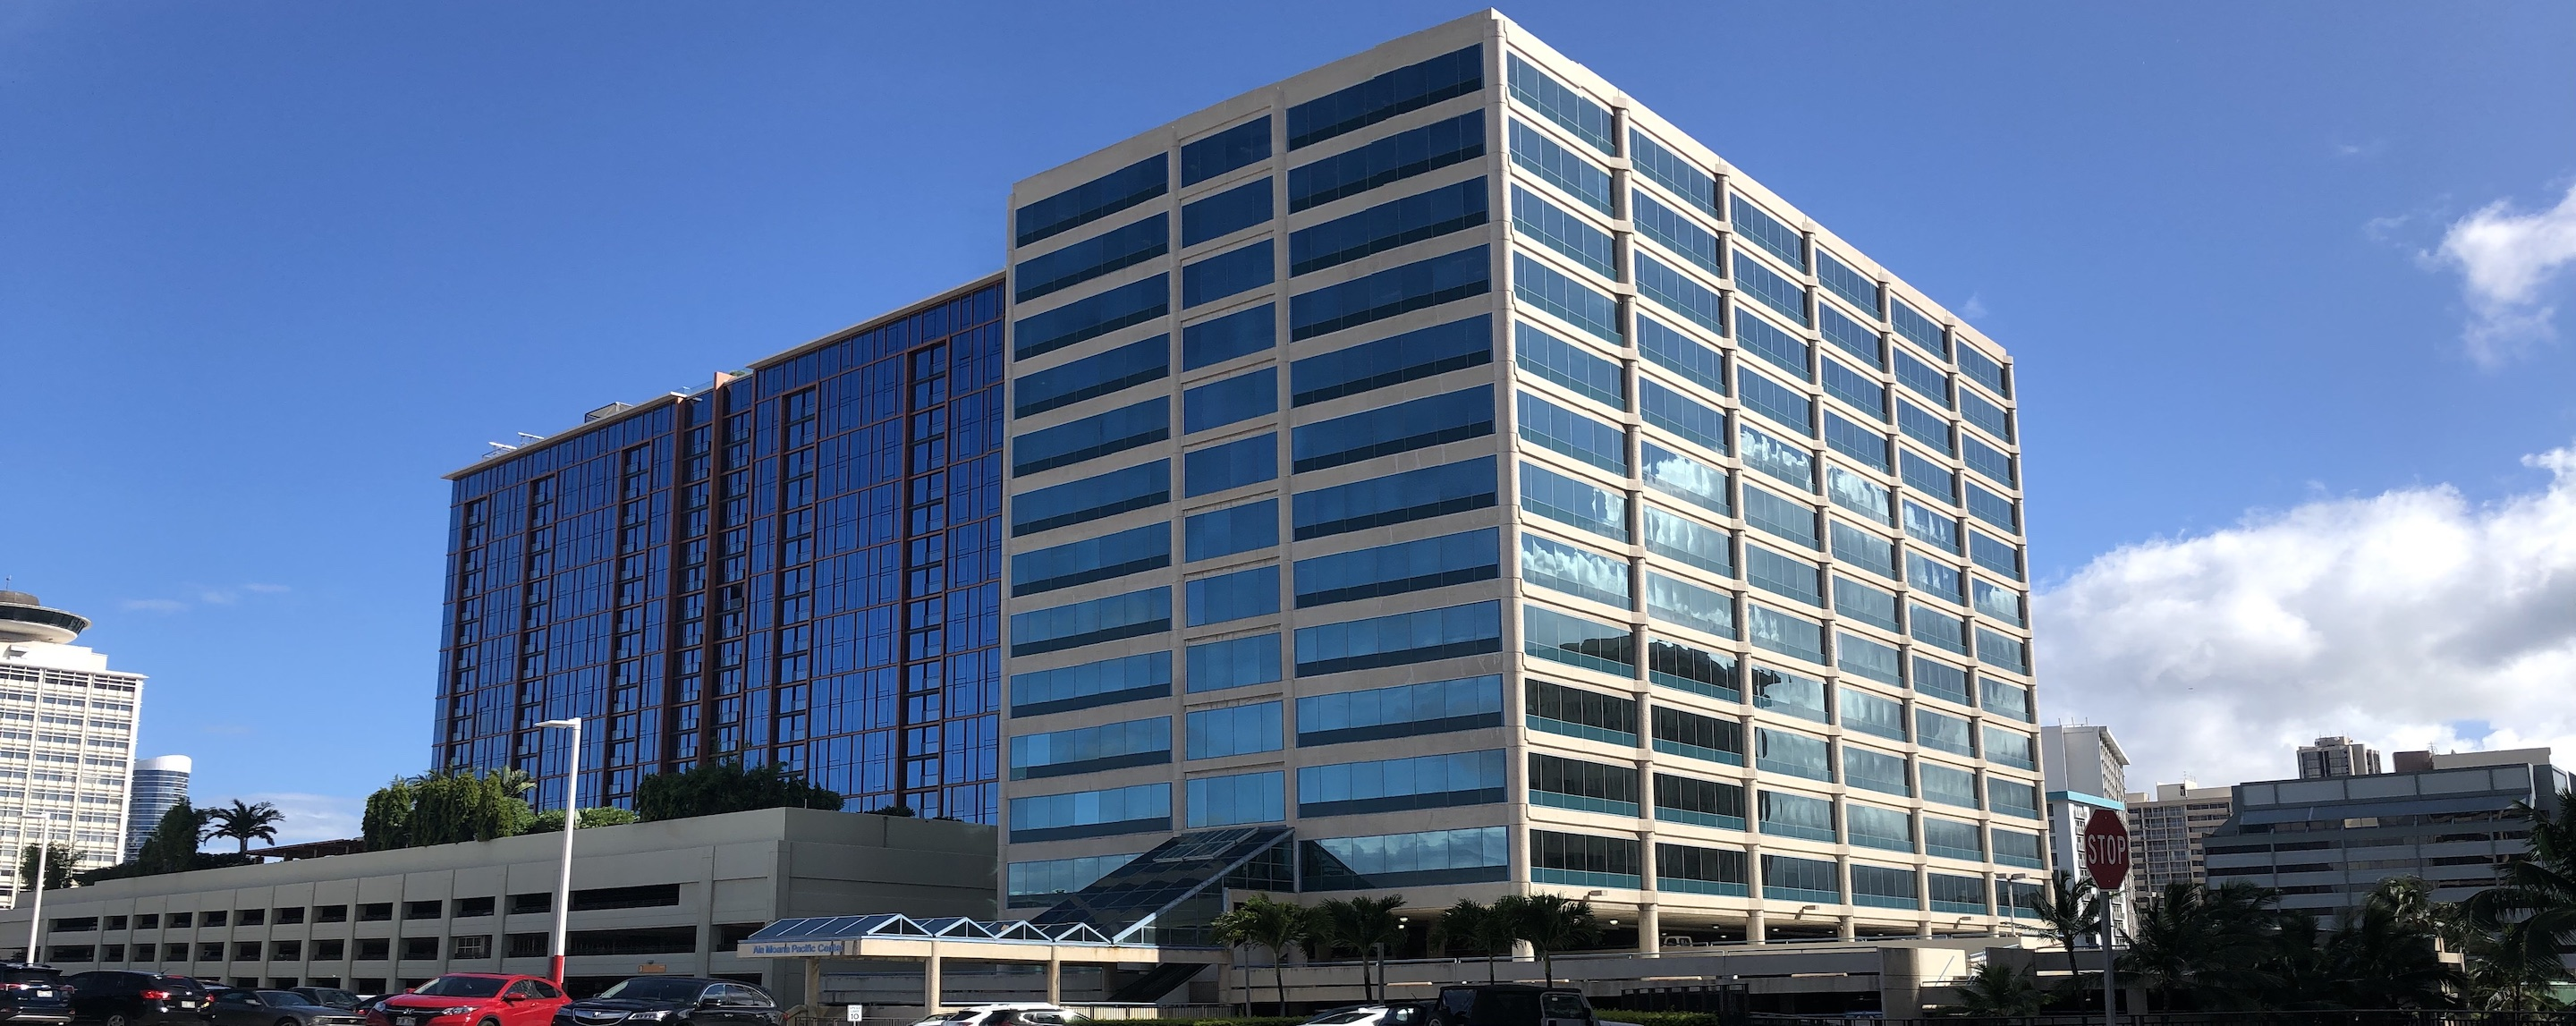 Office property at Ala Moana Pacific Center